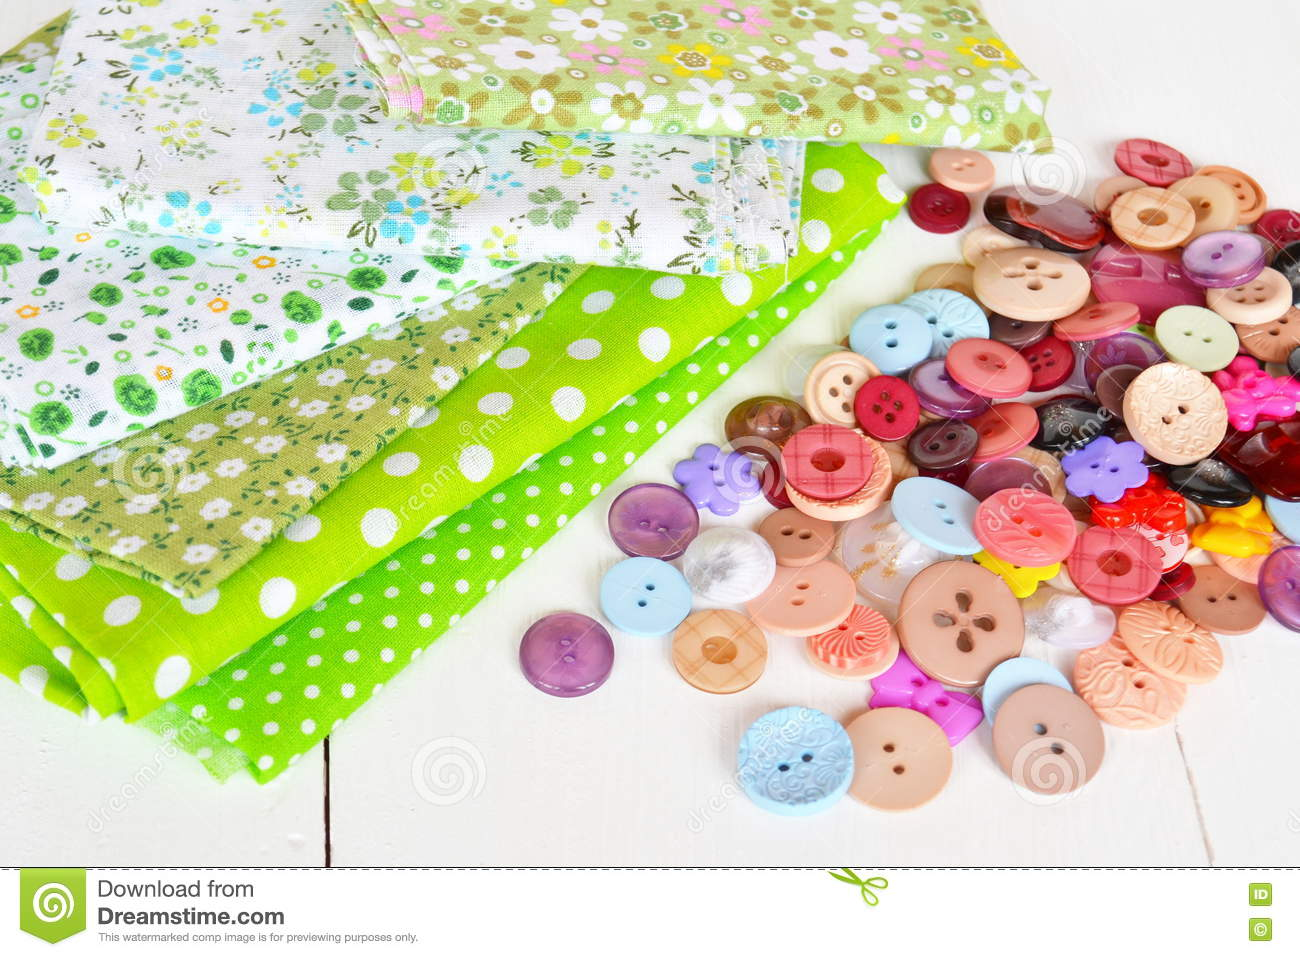 Pieces Of Cloth, Buttons - A Sewing Kit Stock Image - Image